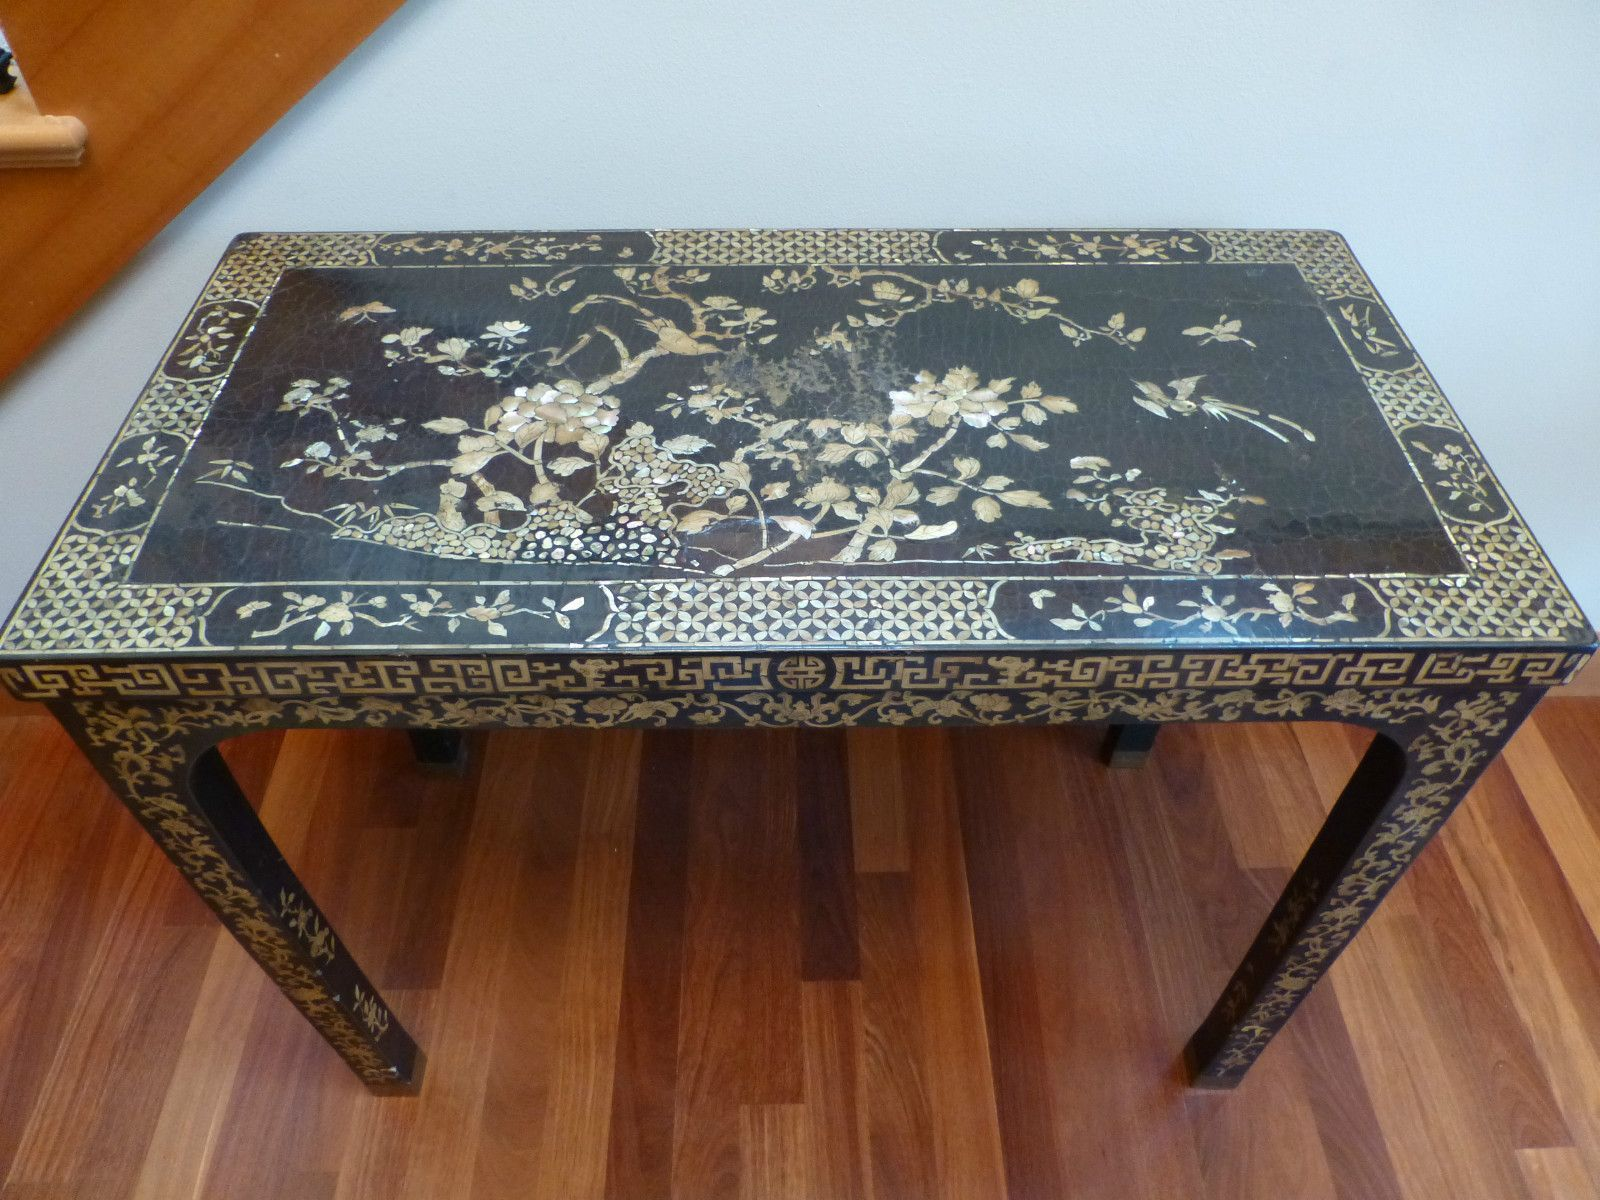 Antique Chinese Black Lacquer Wood Mother Of Pearl Inlay Writing Desk Table Bird Table Desk Nautical Furniture Antiques